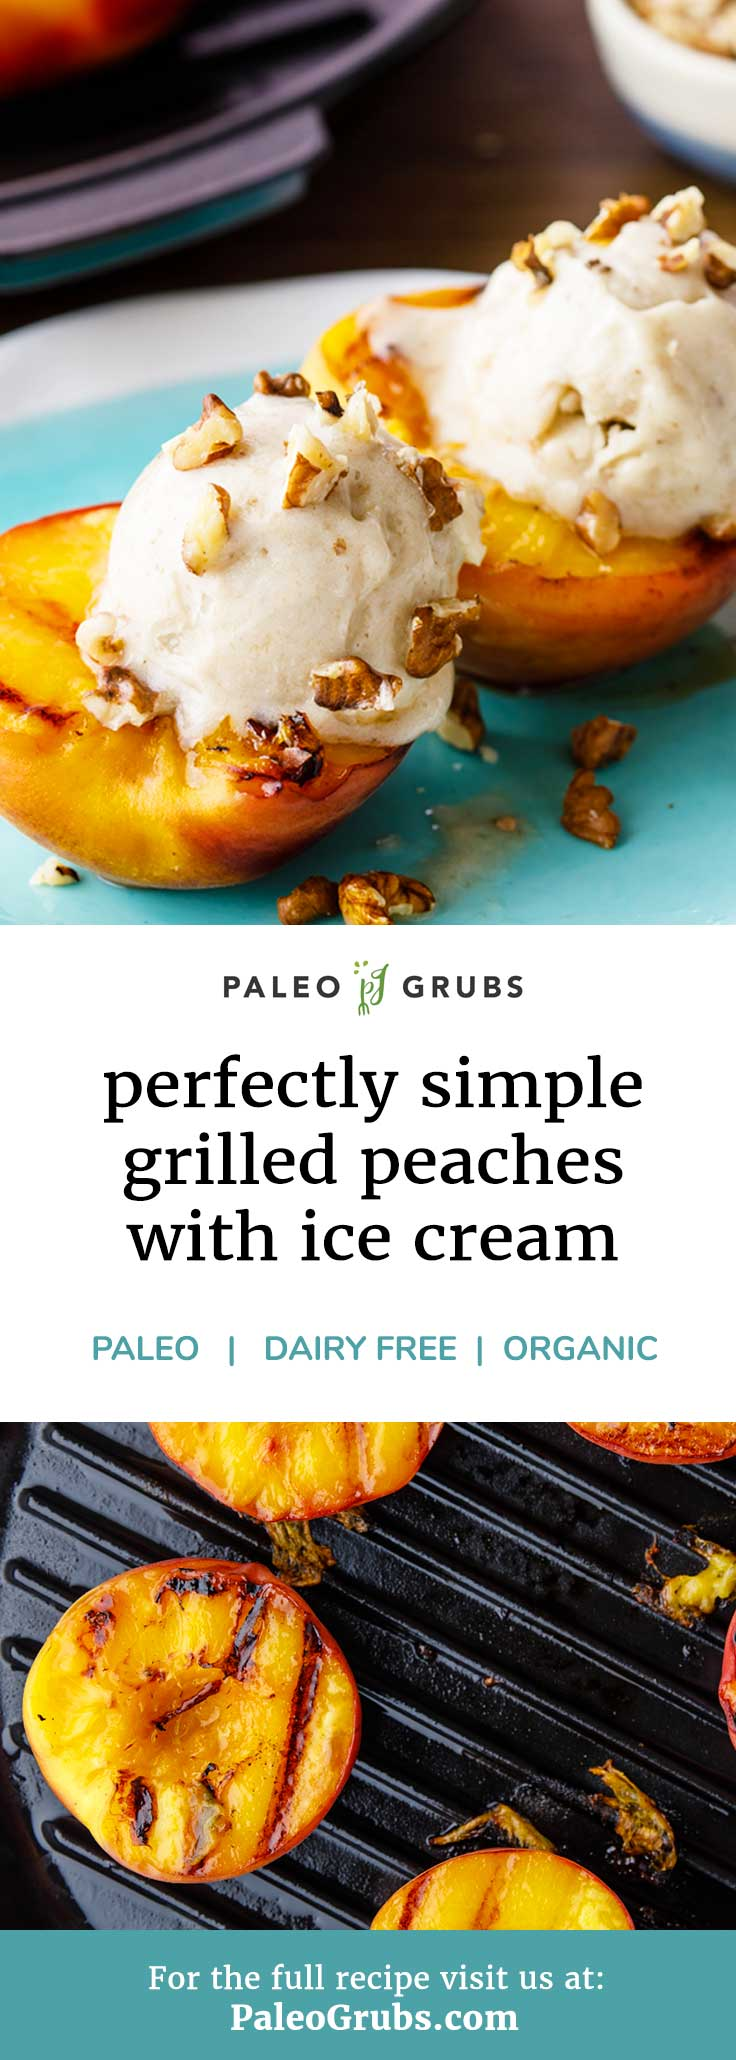 These grilled peaches are probably the easiest paleo dessert I have ever made! And they are to die for. Definitely a keeper.